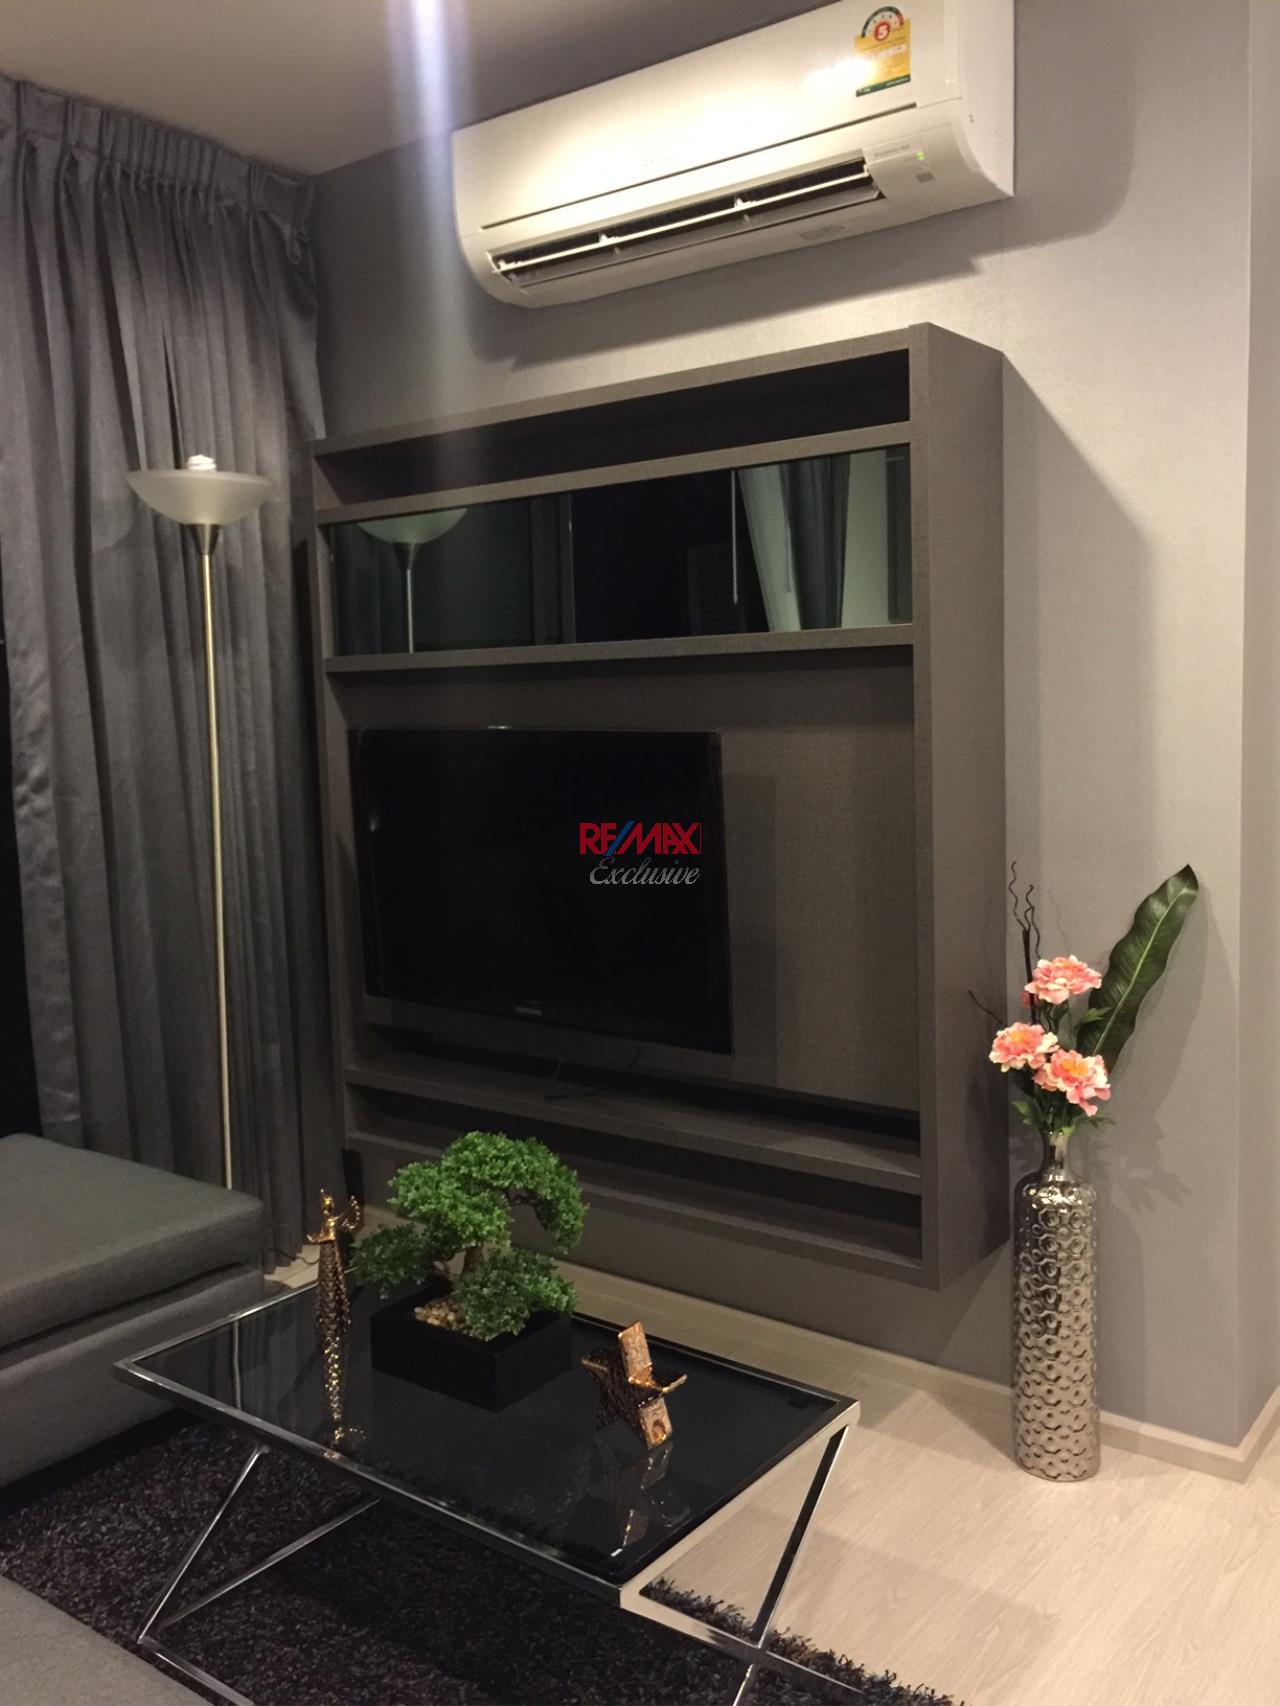 RE/MAX Exclusive Agency's Rhythm Sukhumvit 36-38 1 Bedroom, 42 Sqm., For Rent 35,000 THB!! 2